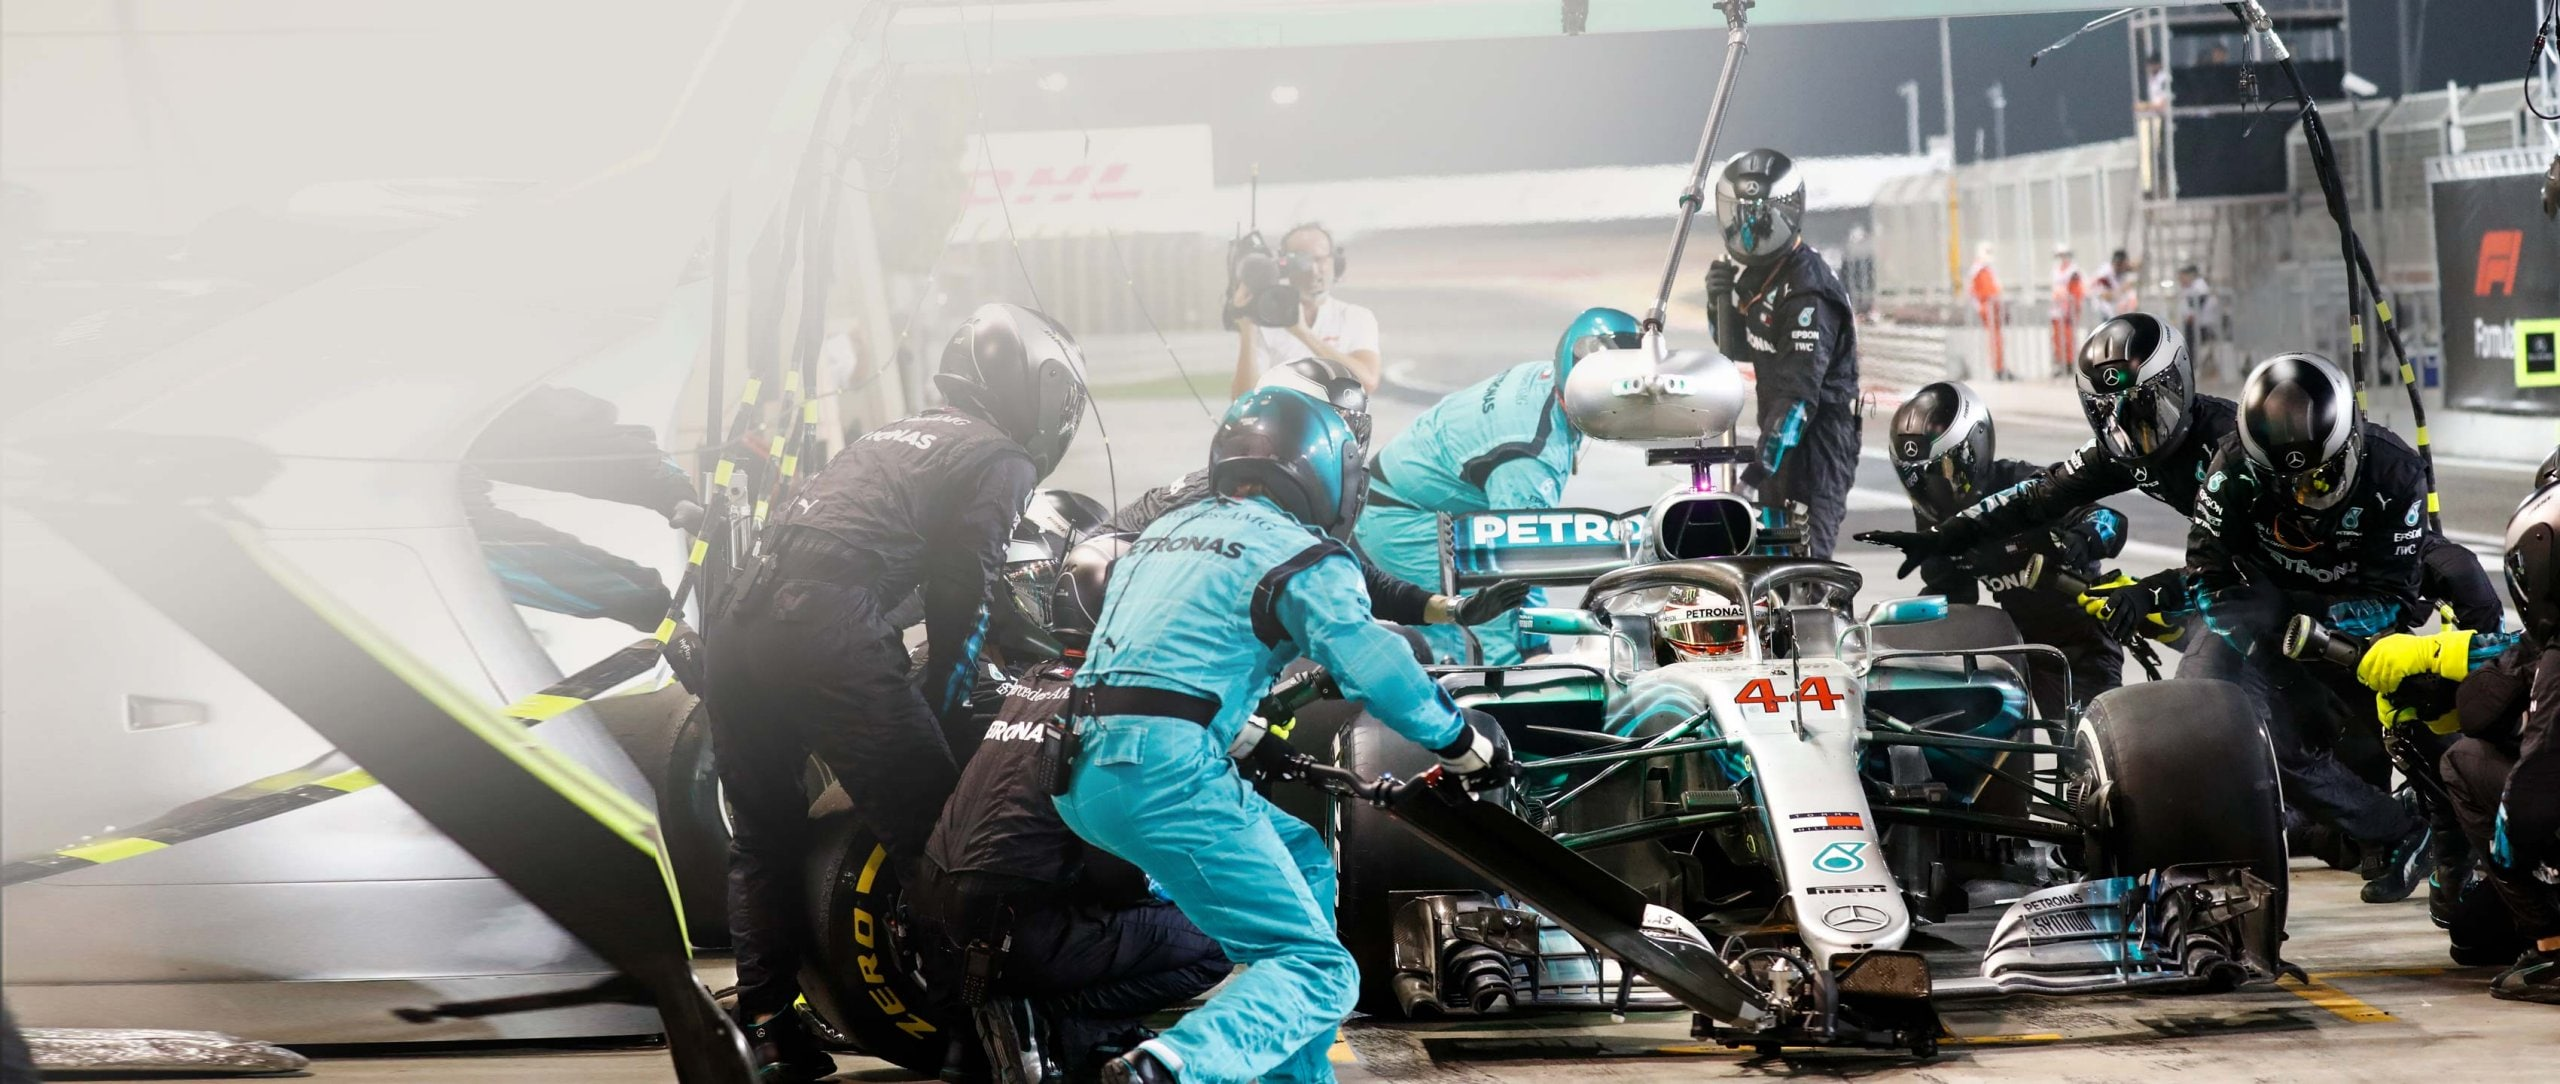 In Formula 1, every millisecond counts: it's not just the pit where everything has to come together perfectly.